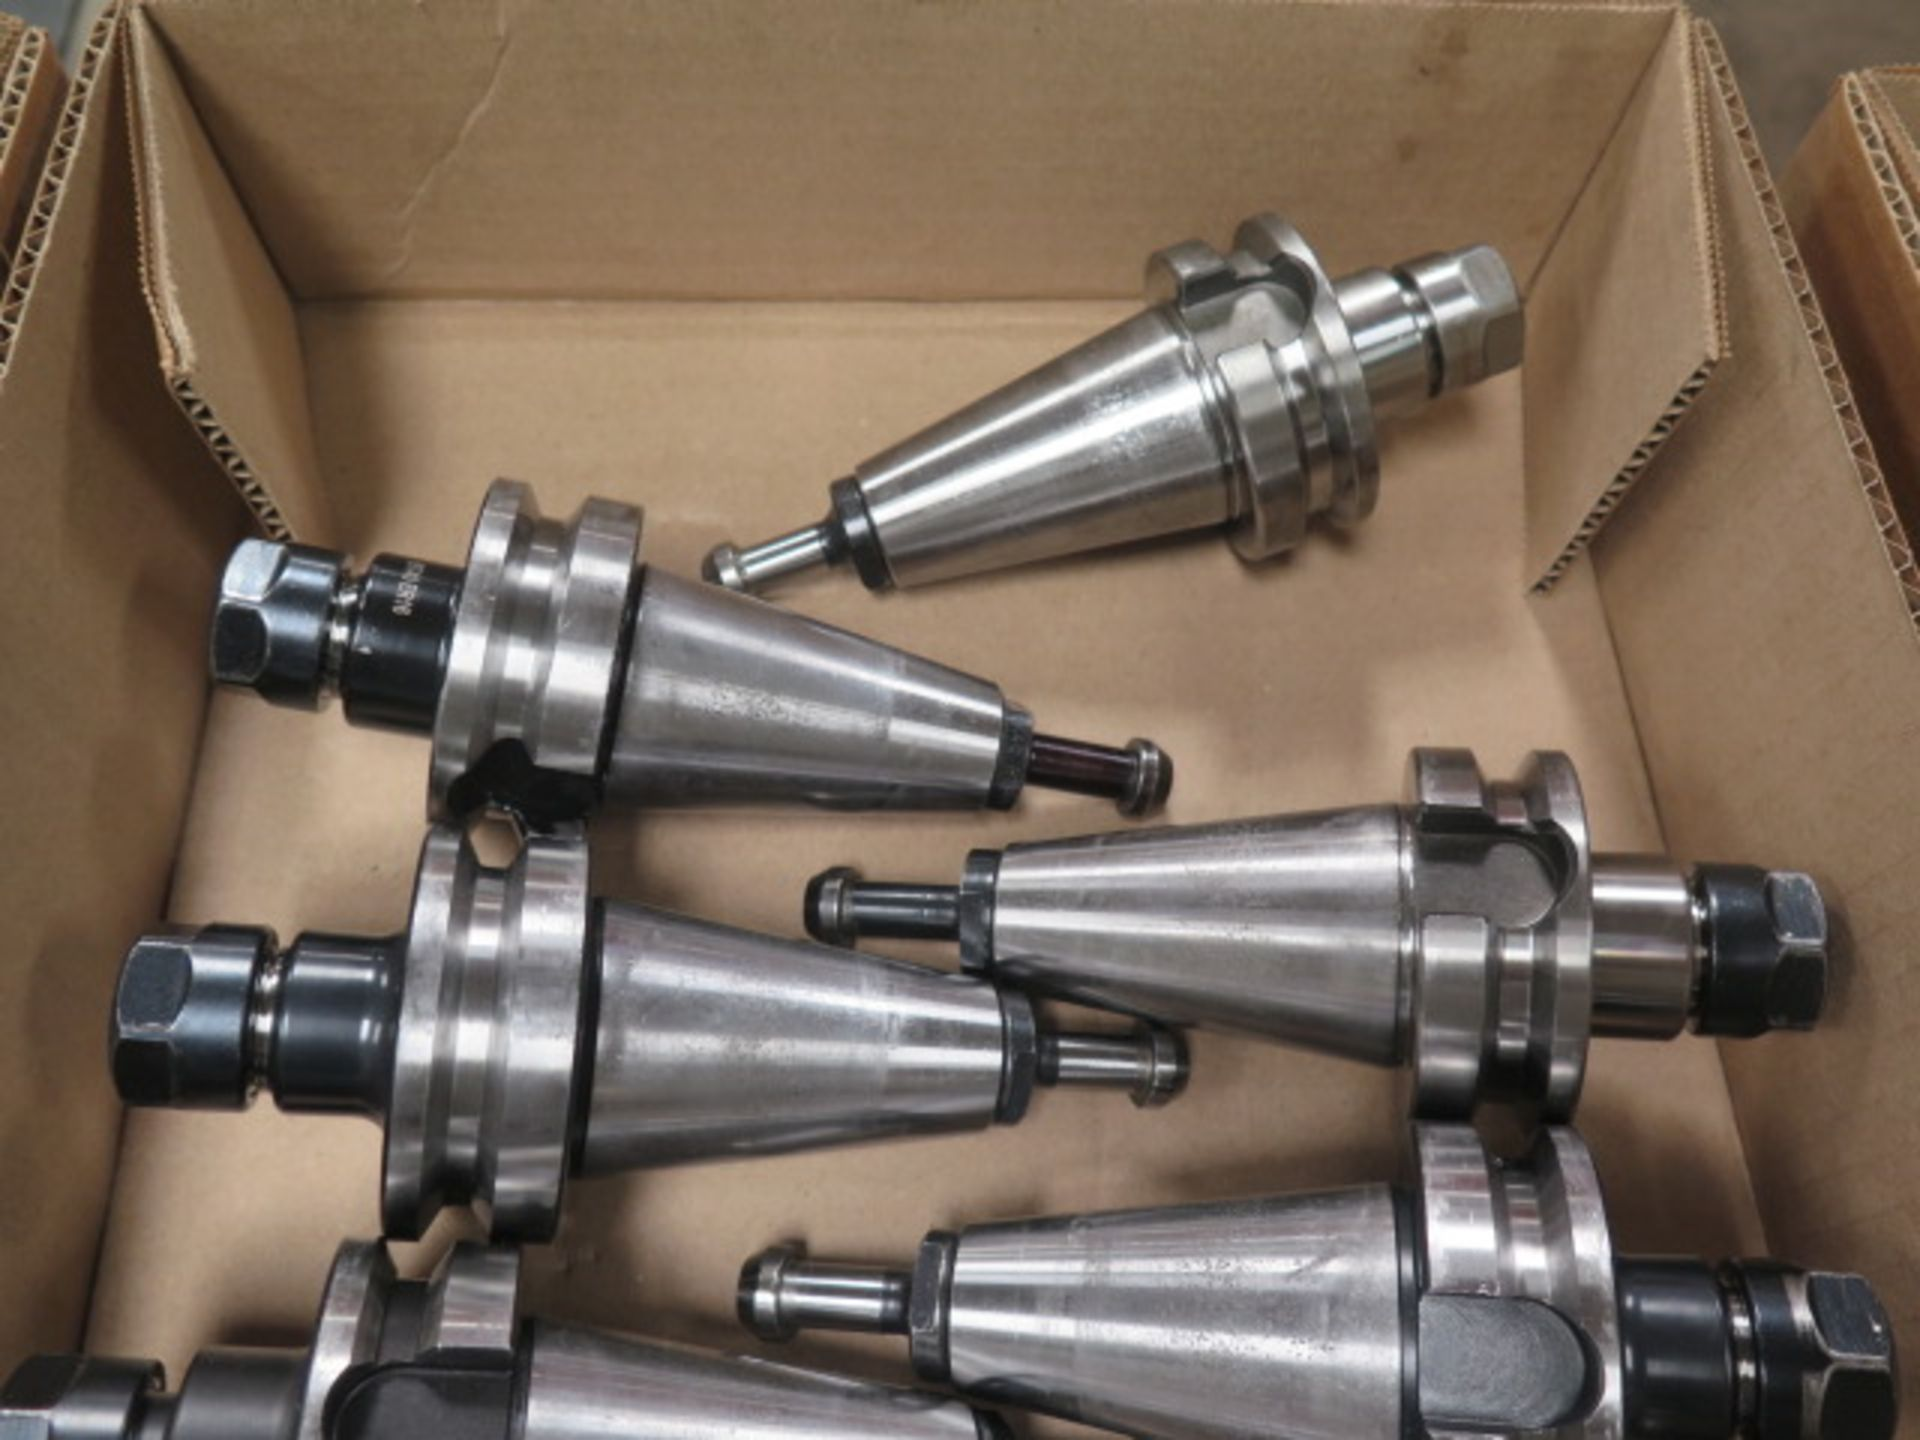 BT-40 Taper ER16 Collet Chucks (10) (SOLD AS-IS - NO WARRANTY) - Image 3 of 4